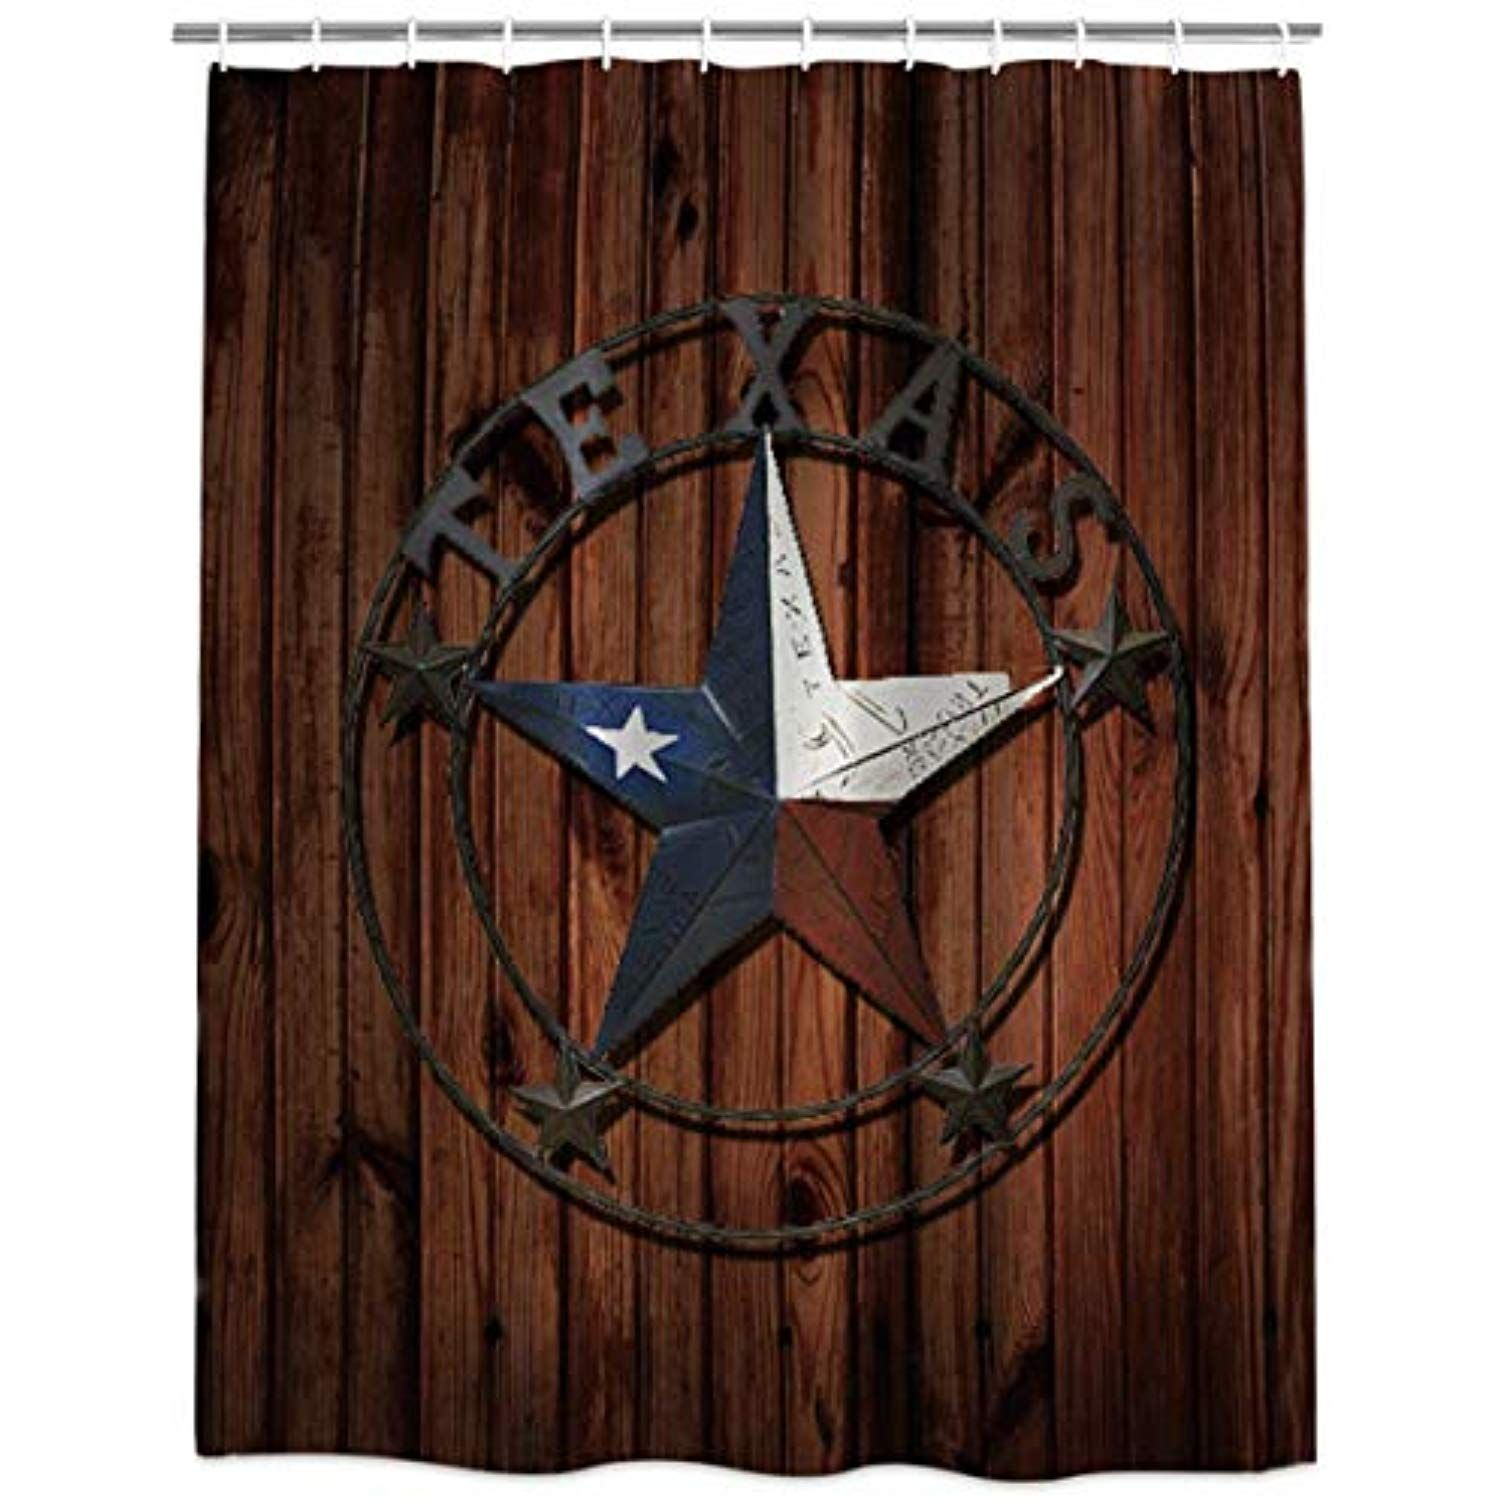 Prironde Fabric Shower Curtain Western Texas Star Rustic Wood